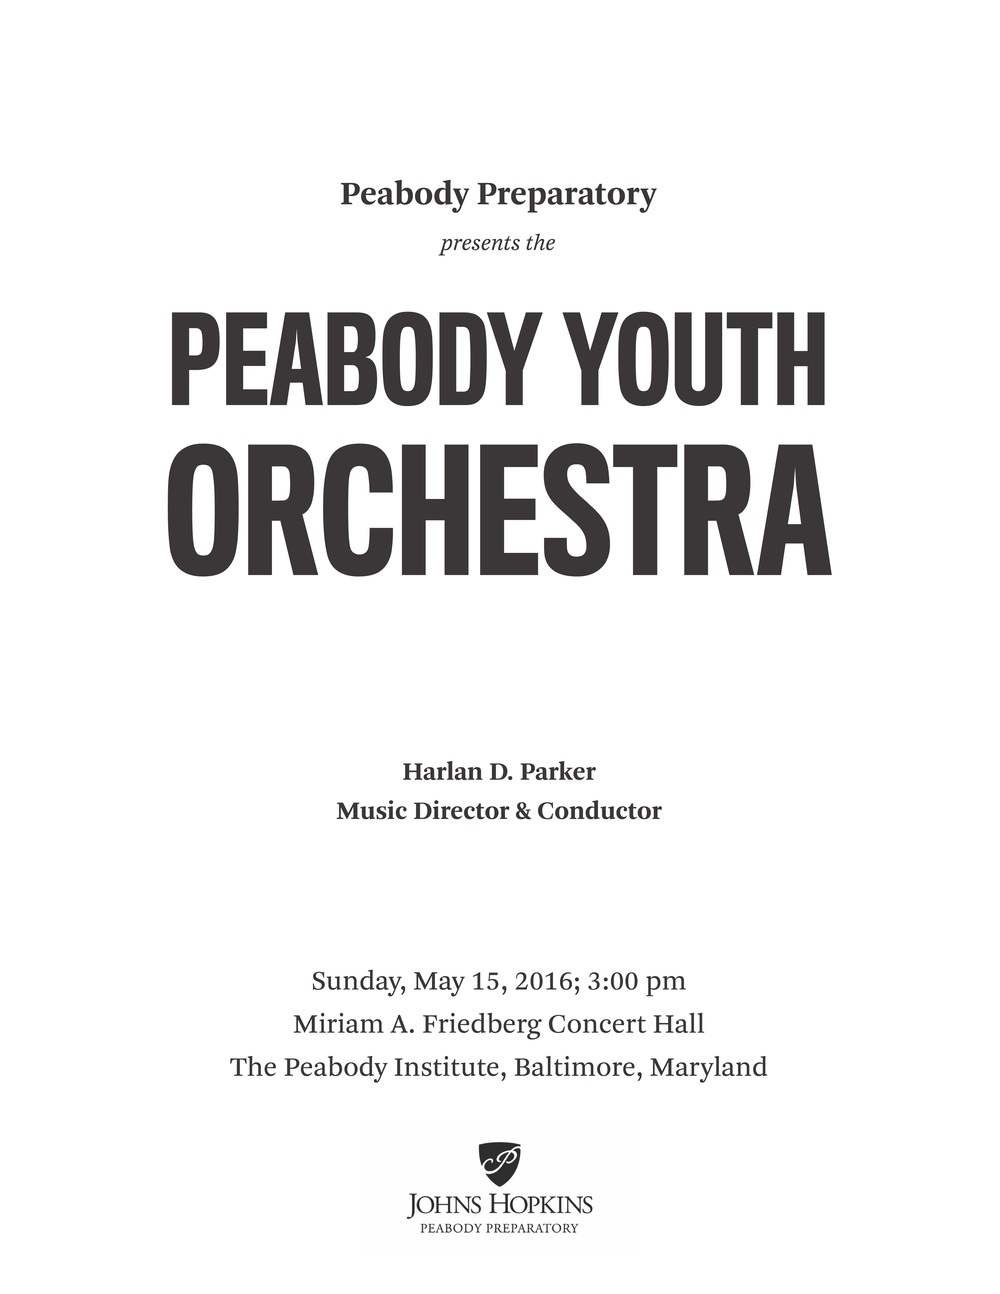 Peabody Preparatory Orders — Focal Point Productions, Inc